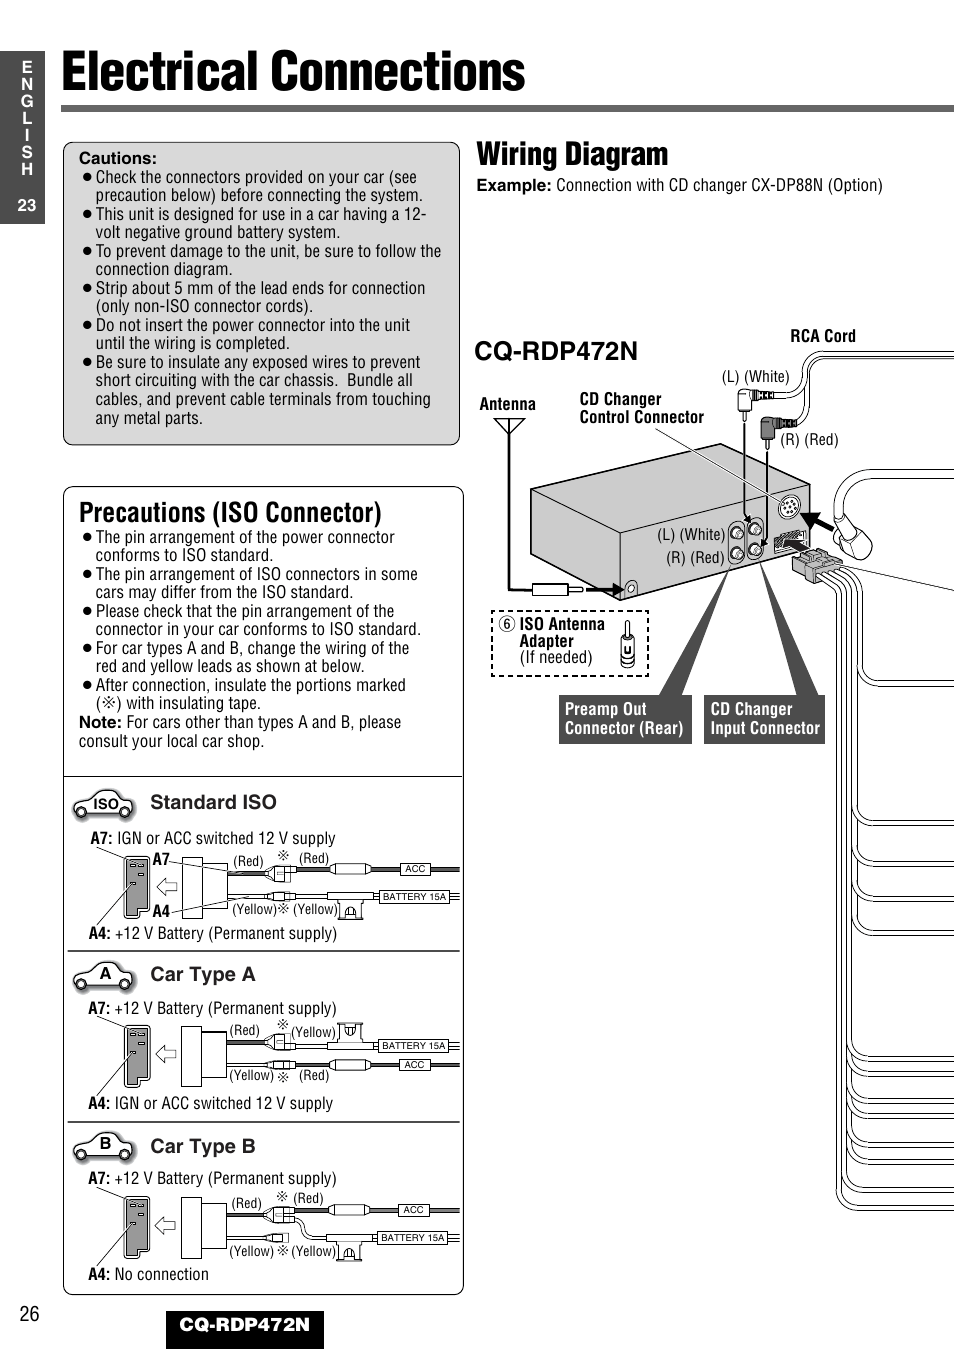 medium resolution of electrical connections wiring diagram precautions iso connector panasonic cq rdp472n user manual page 26 36